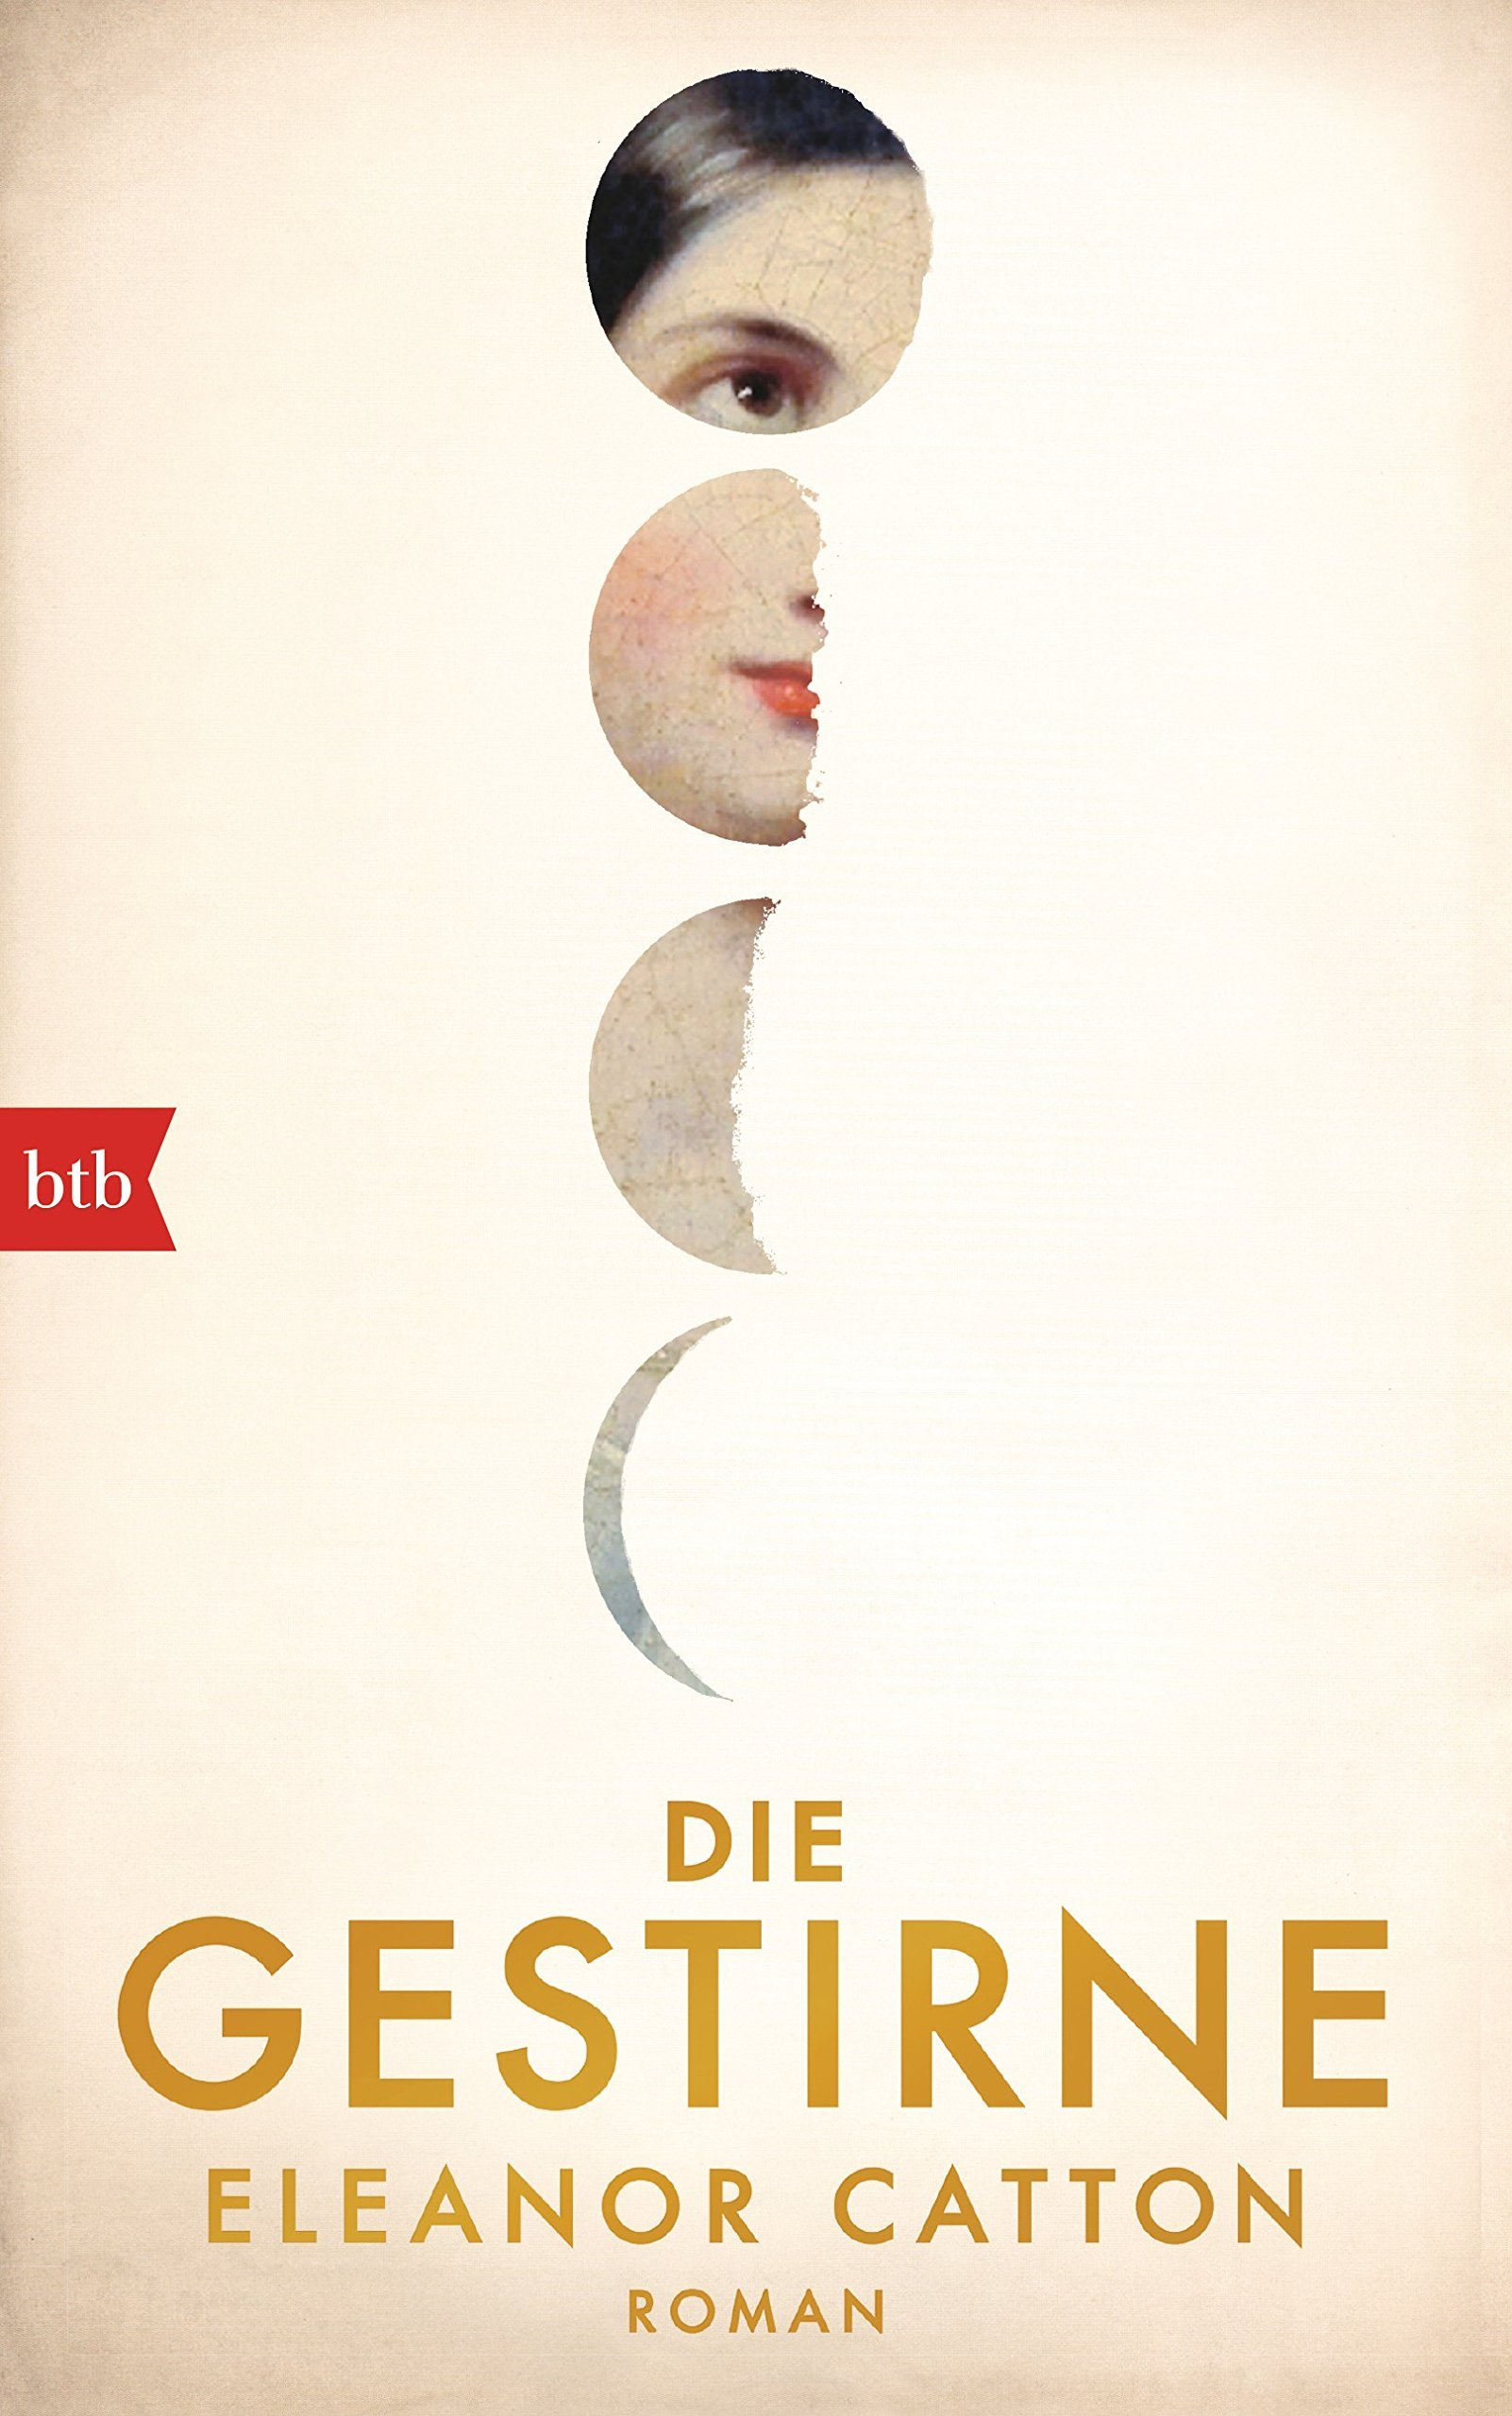 Die Gestirne Eleanor Catton